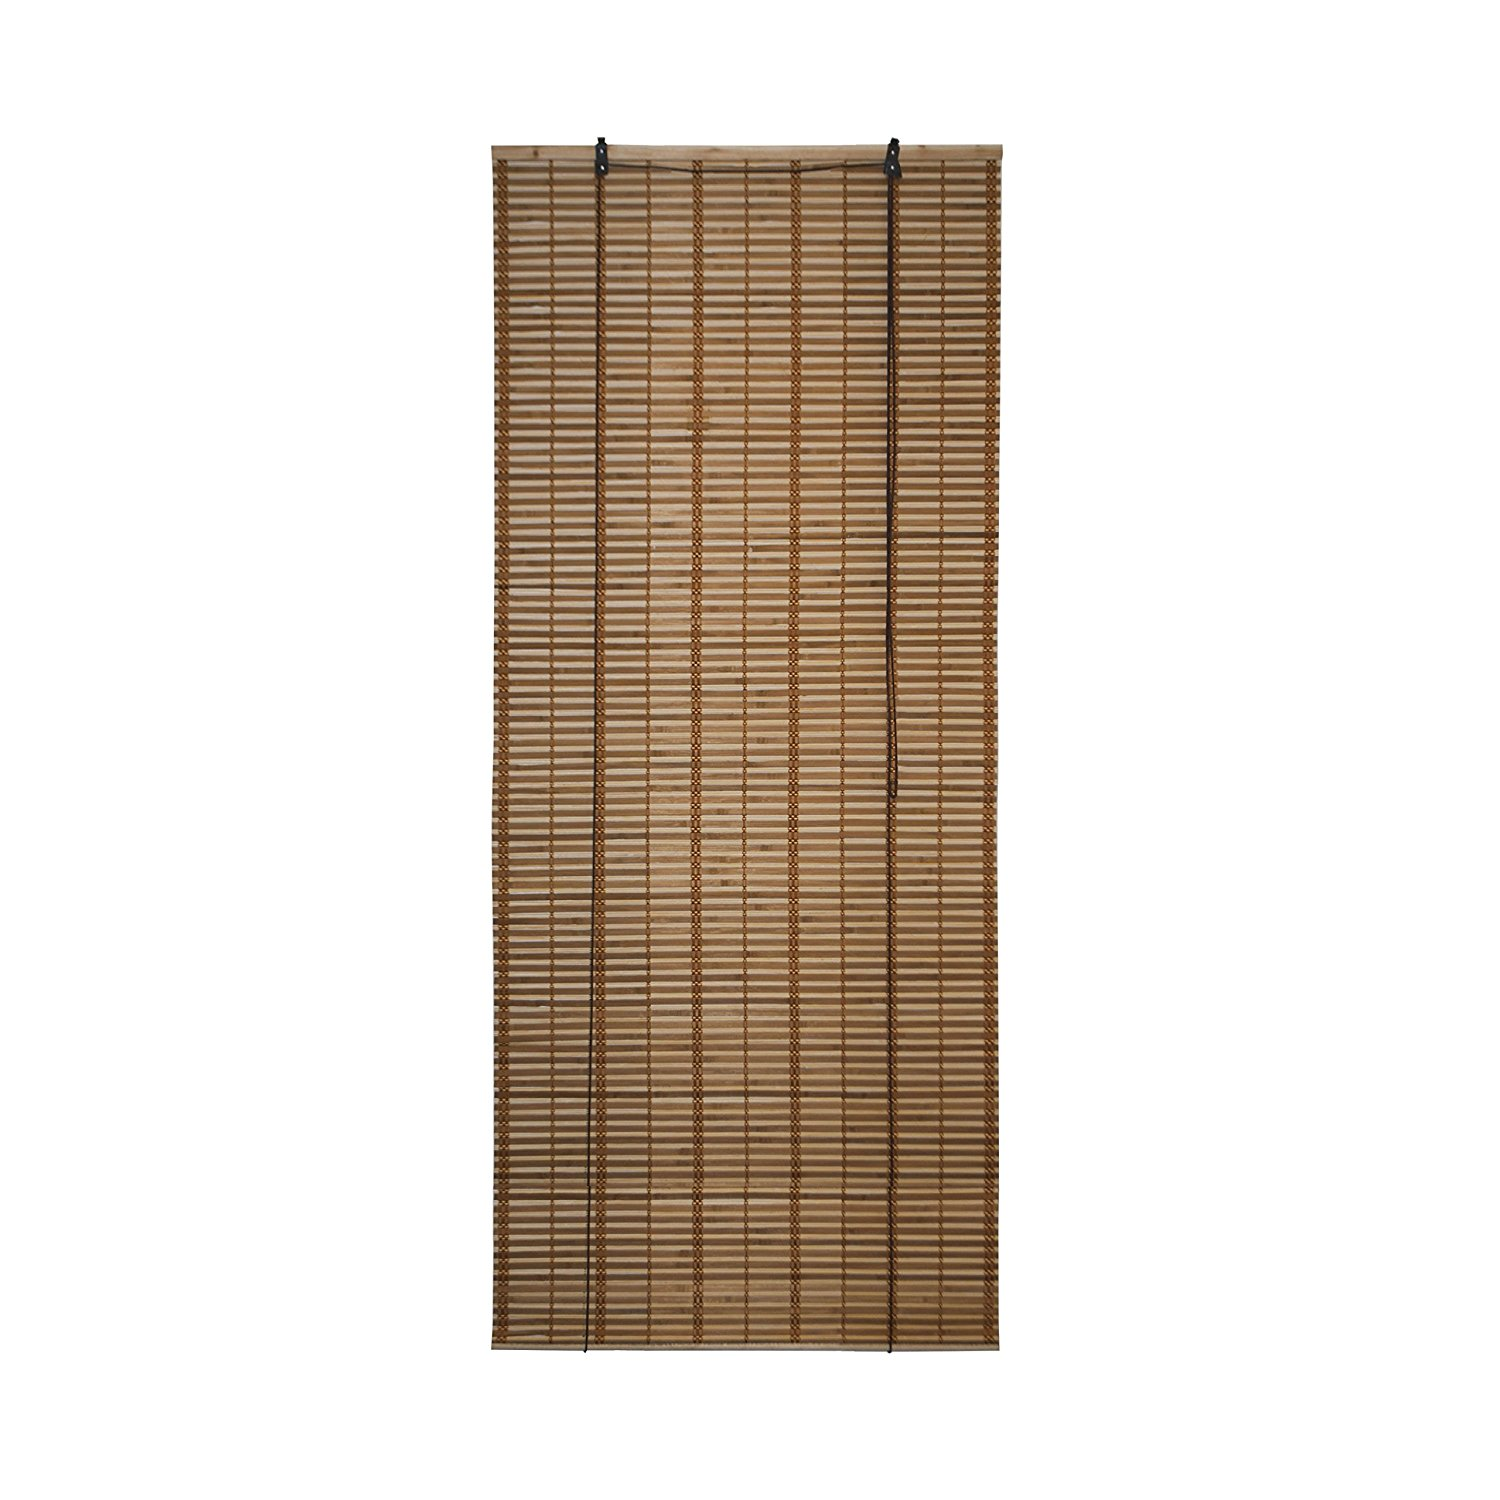 Light Brown Bamboo Midollino Wooden Roll Up Blinds Light Filtering Shades 32X72